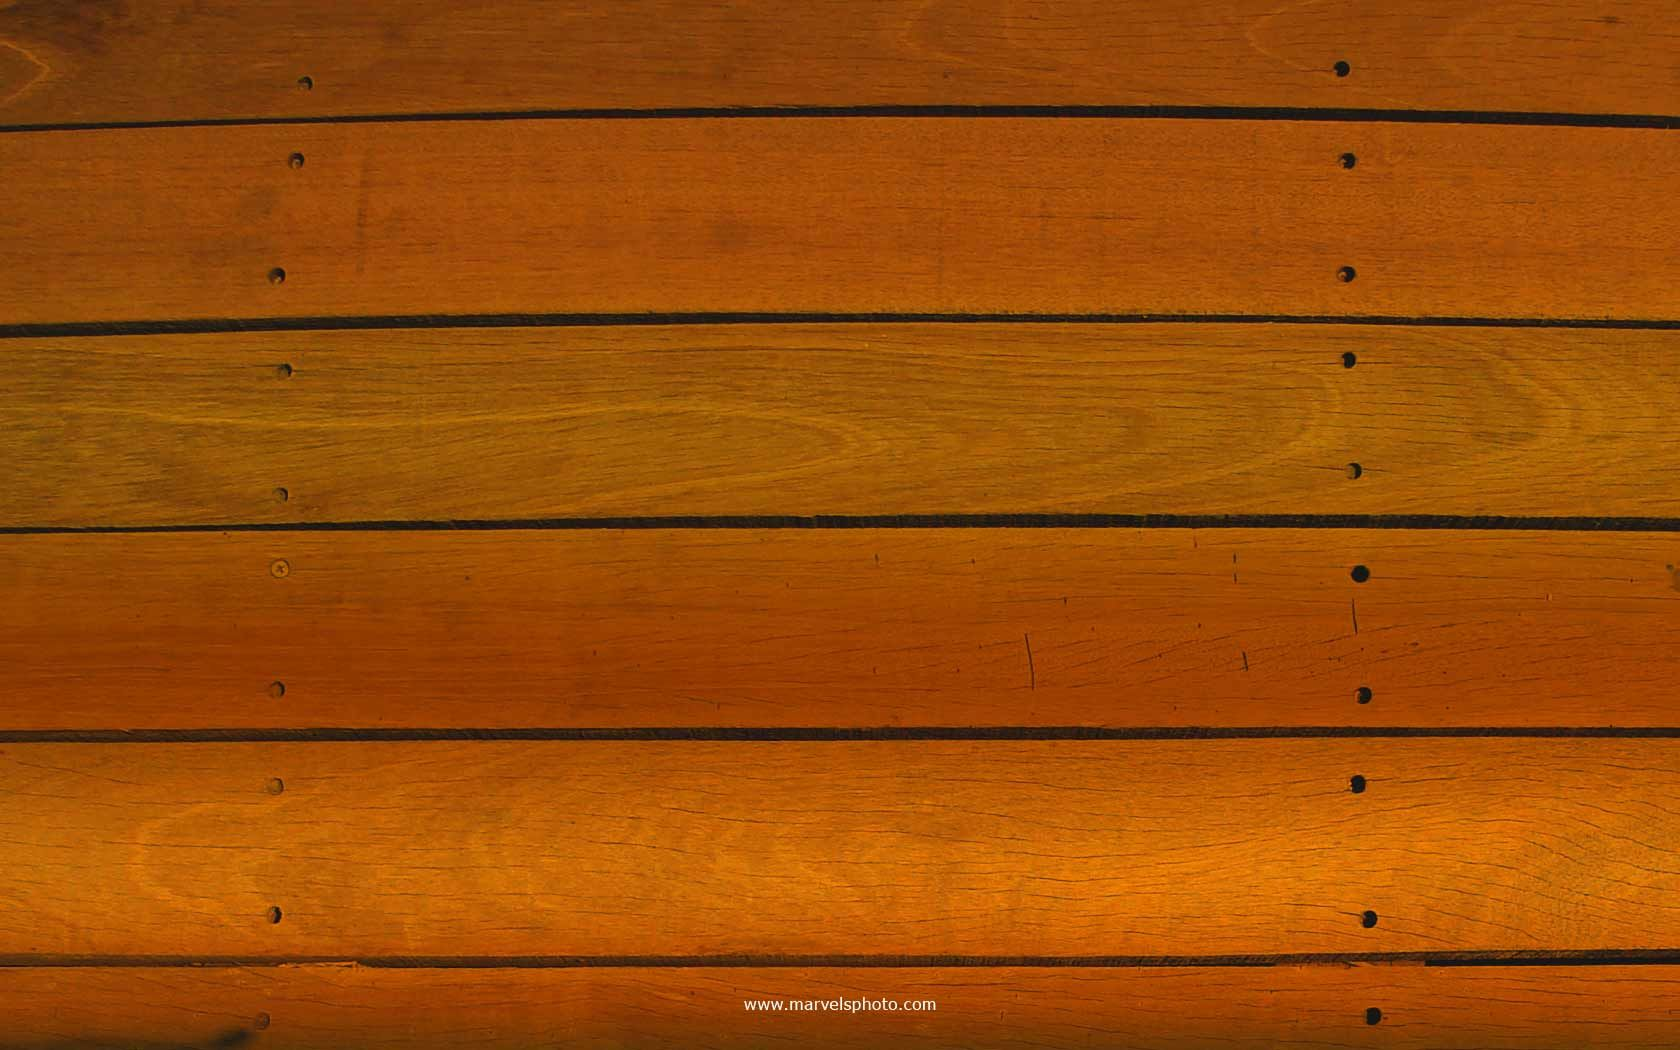 Wood texture background for powerpoint templates diy projects wood texture background for powerpoint templates toneelgroepblik Image collections